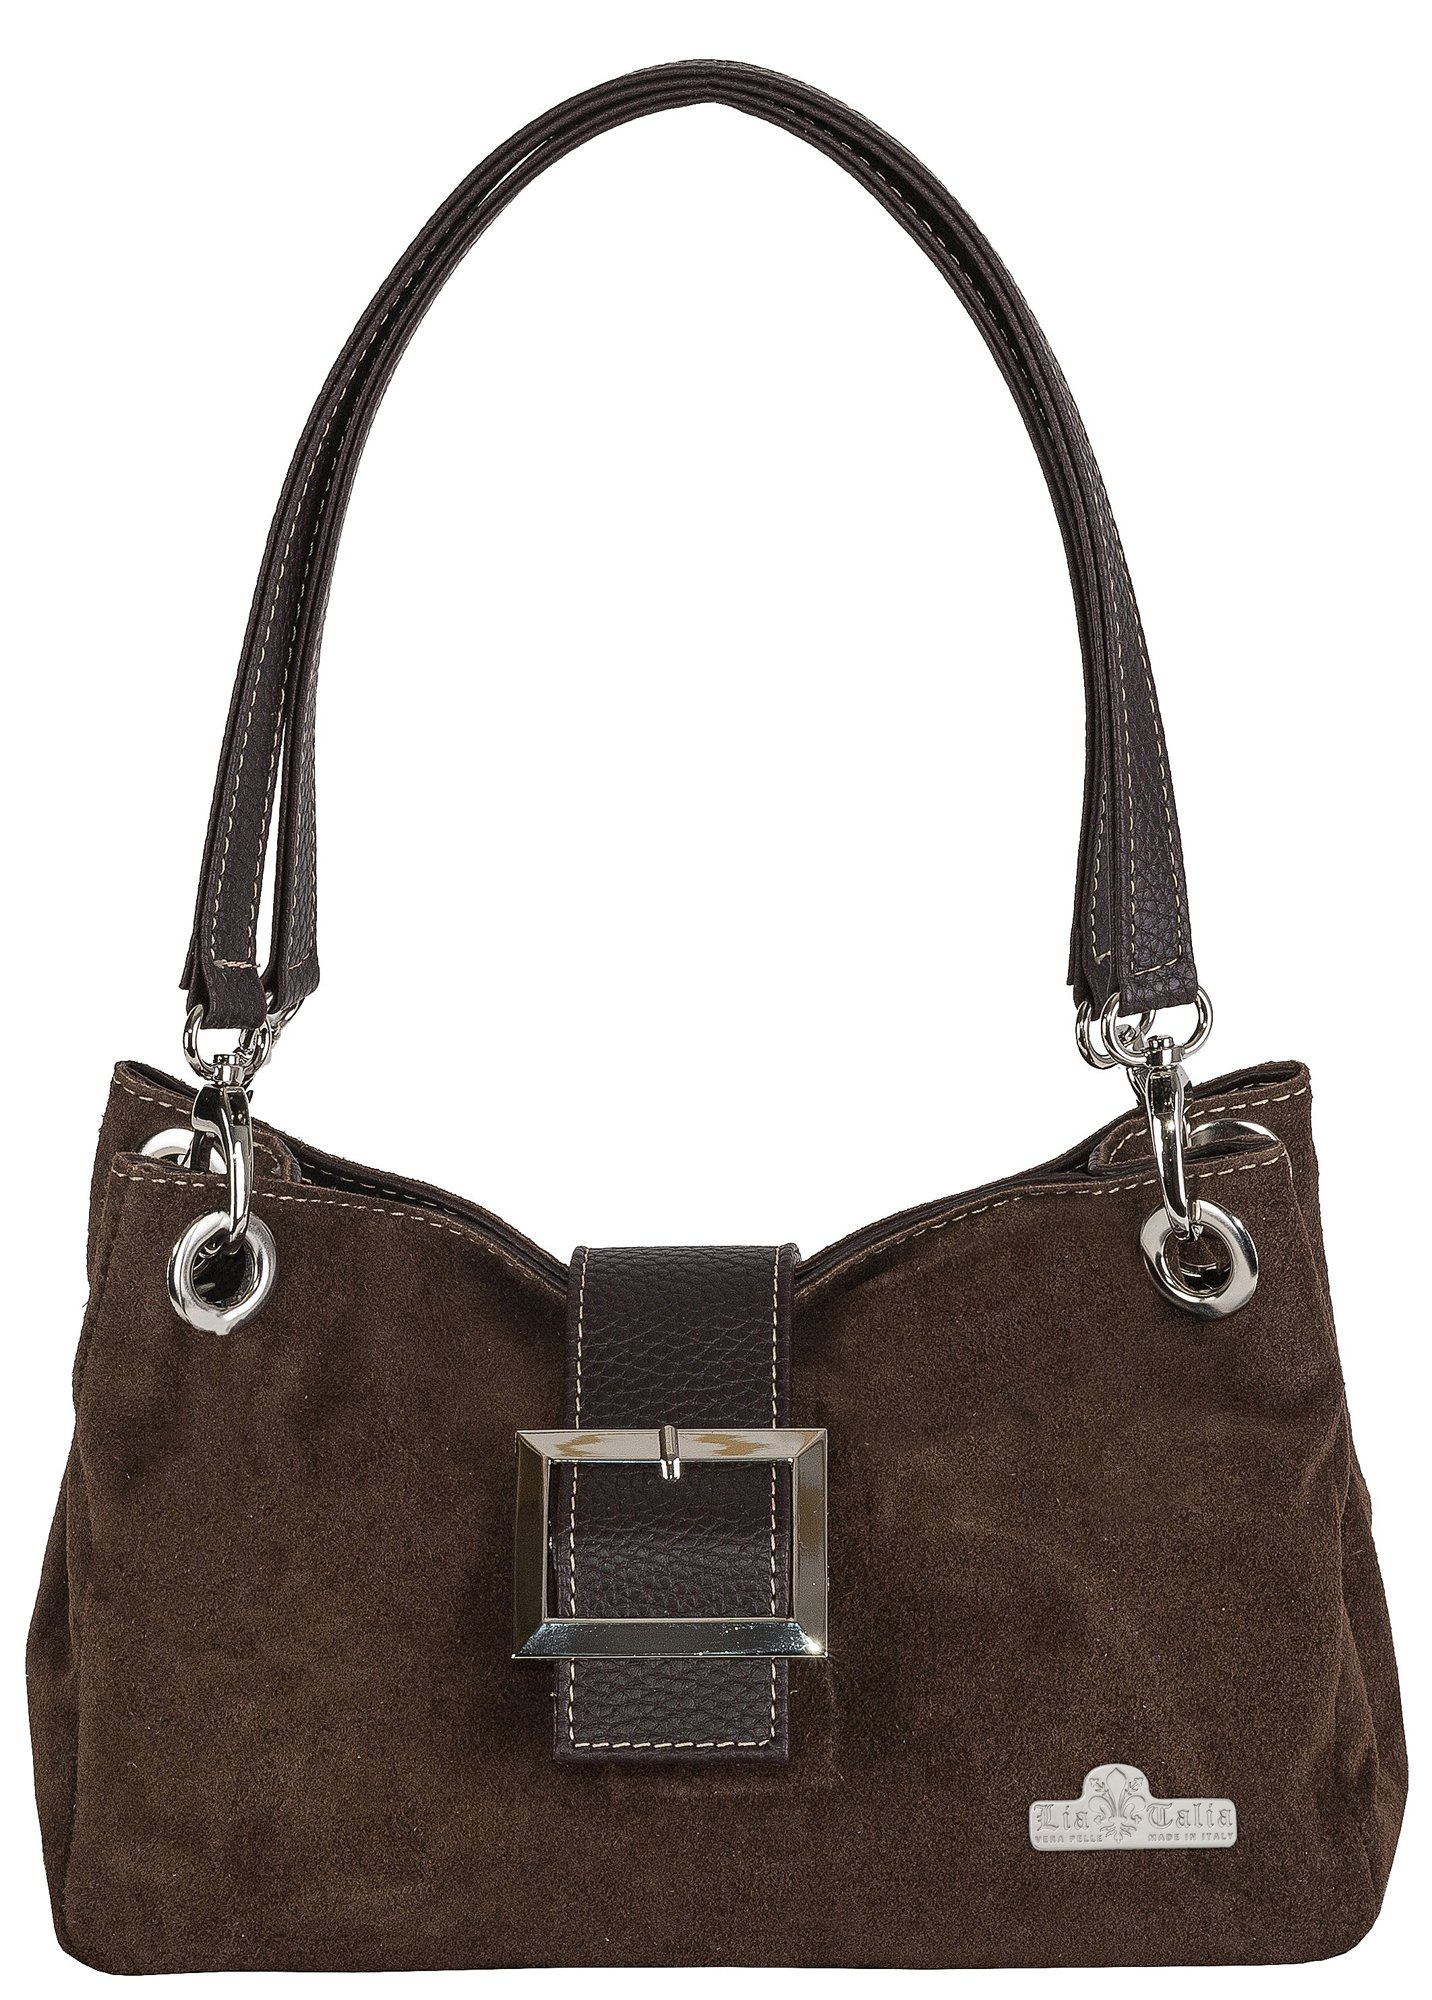 LiaTalia Real Italian Suede Small Leather Bag with Faux Trim Cotton Lining and a Protective Dust Storage Bag - Pixie [Dark Tan - Brown Trim]